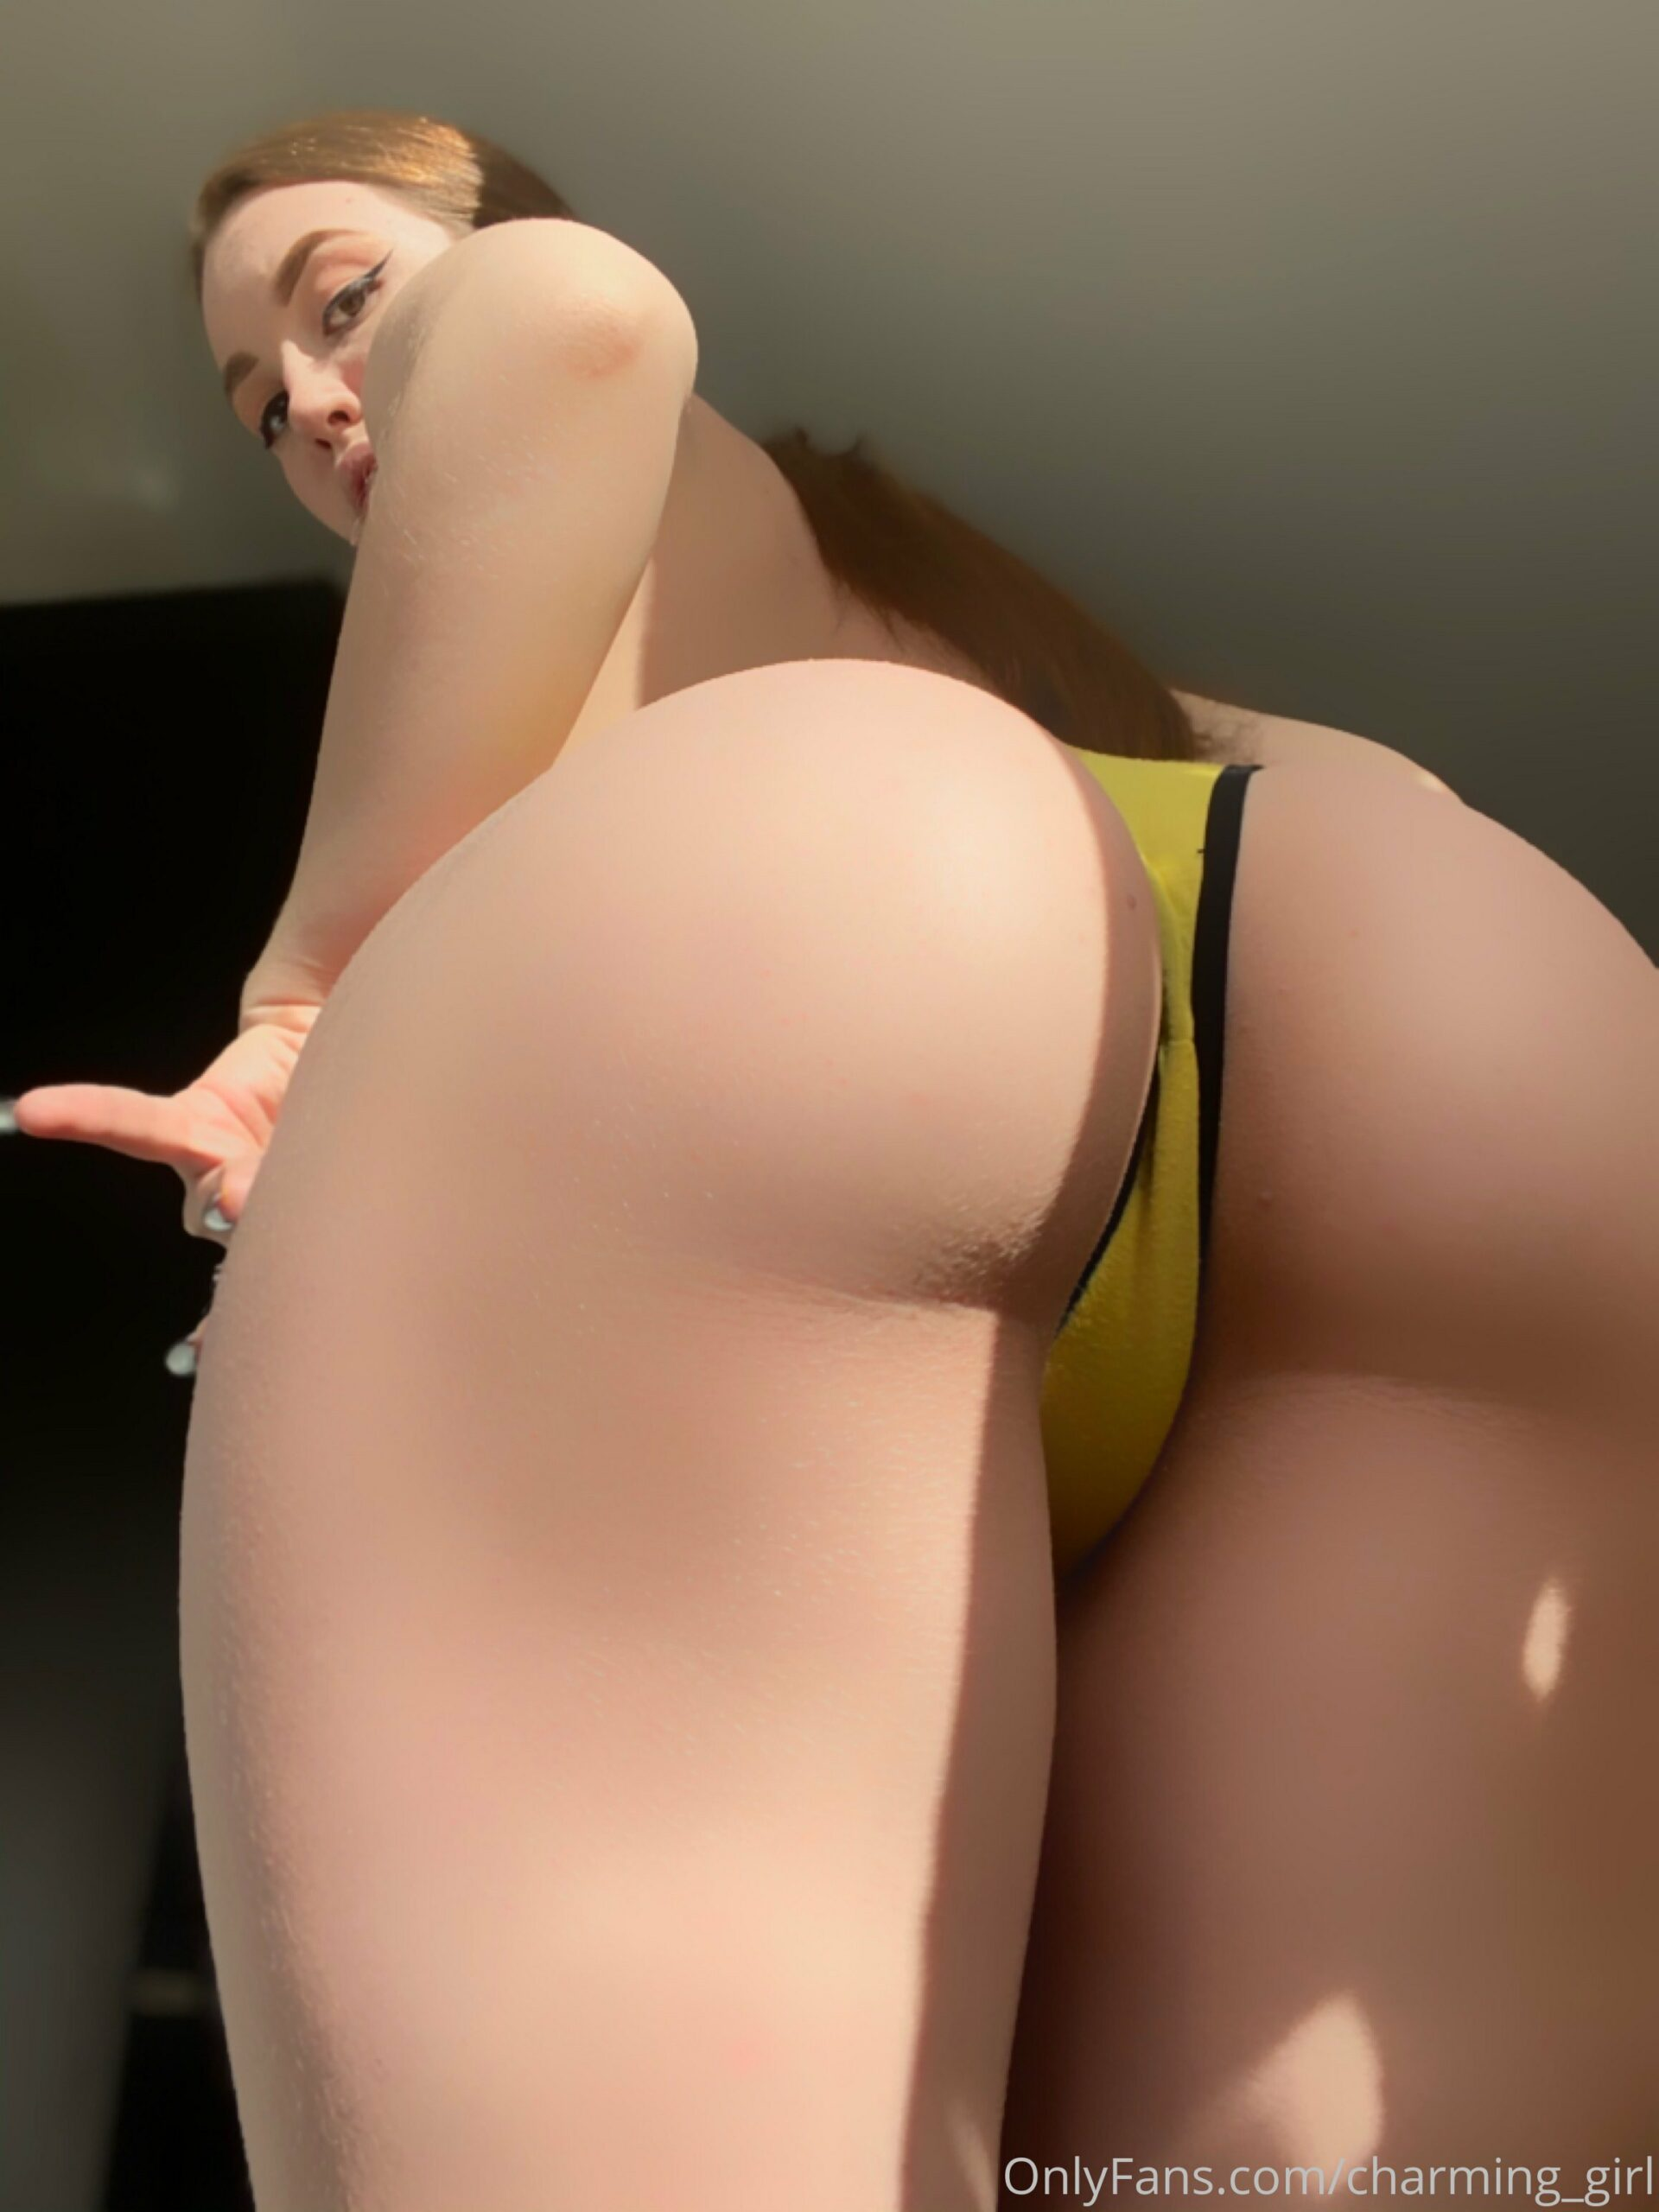 Charming girl Porn OnlyFans Leaked Nudes 55